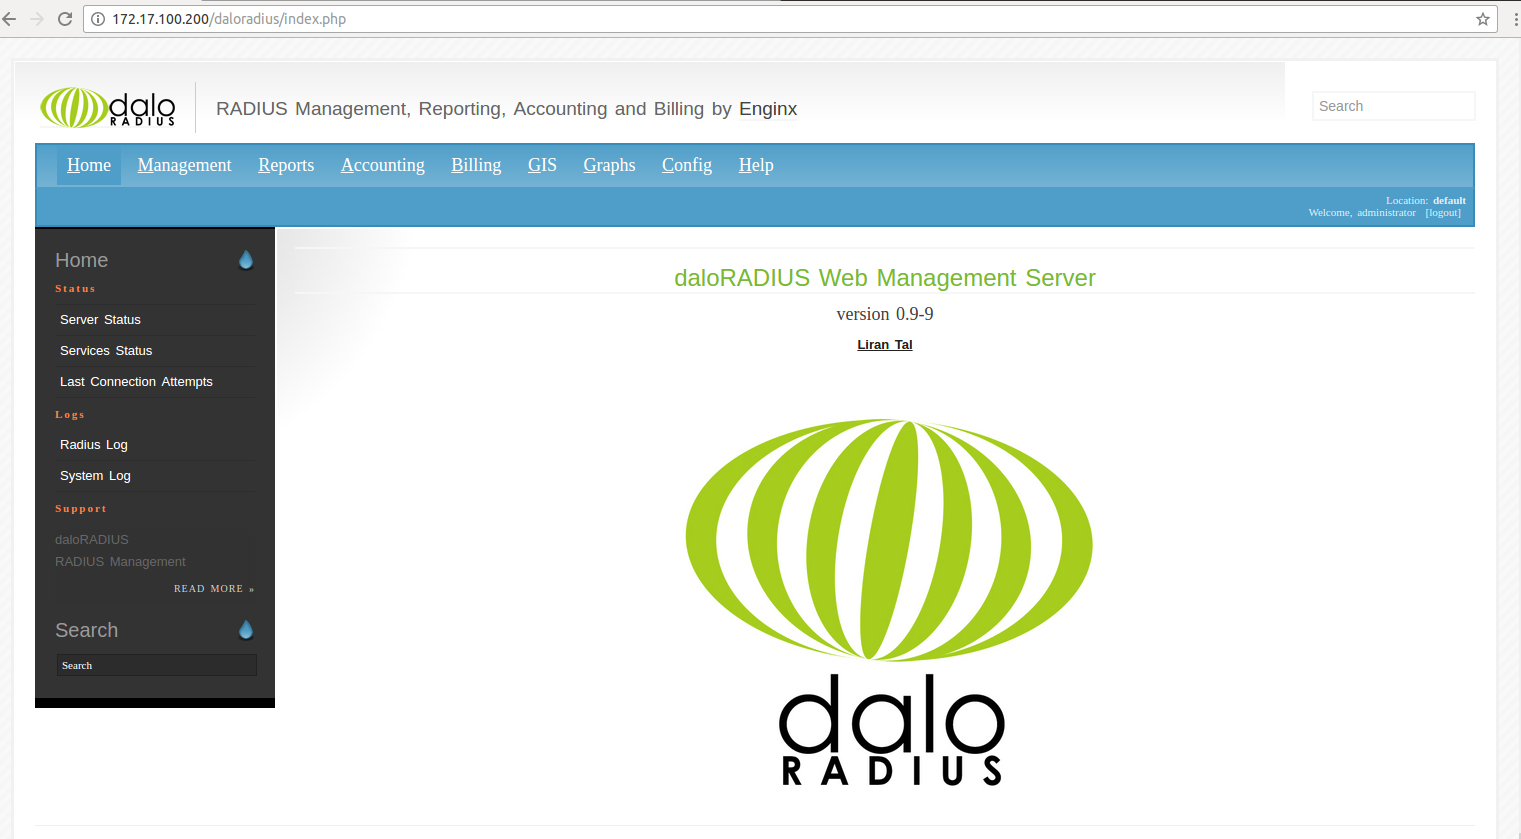 FreeRadius-Configuration-with-DaloRadius-CentOS 7 - linuxtopic